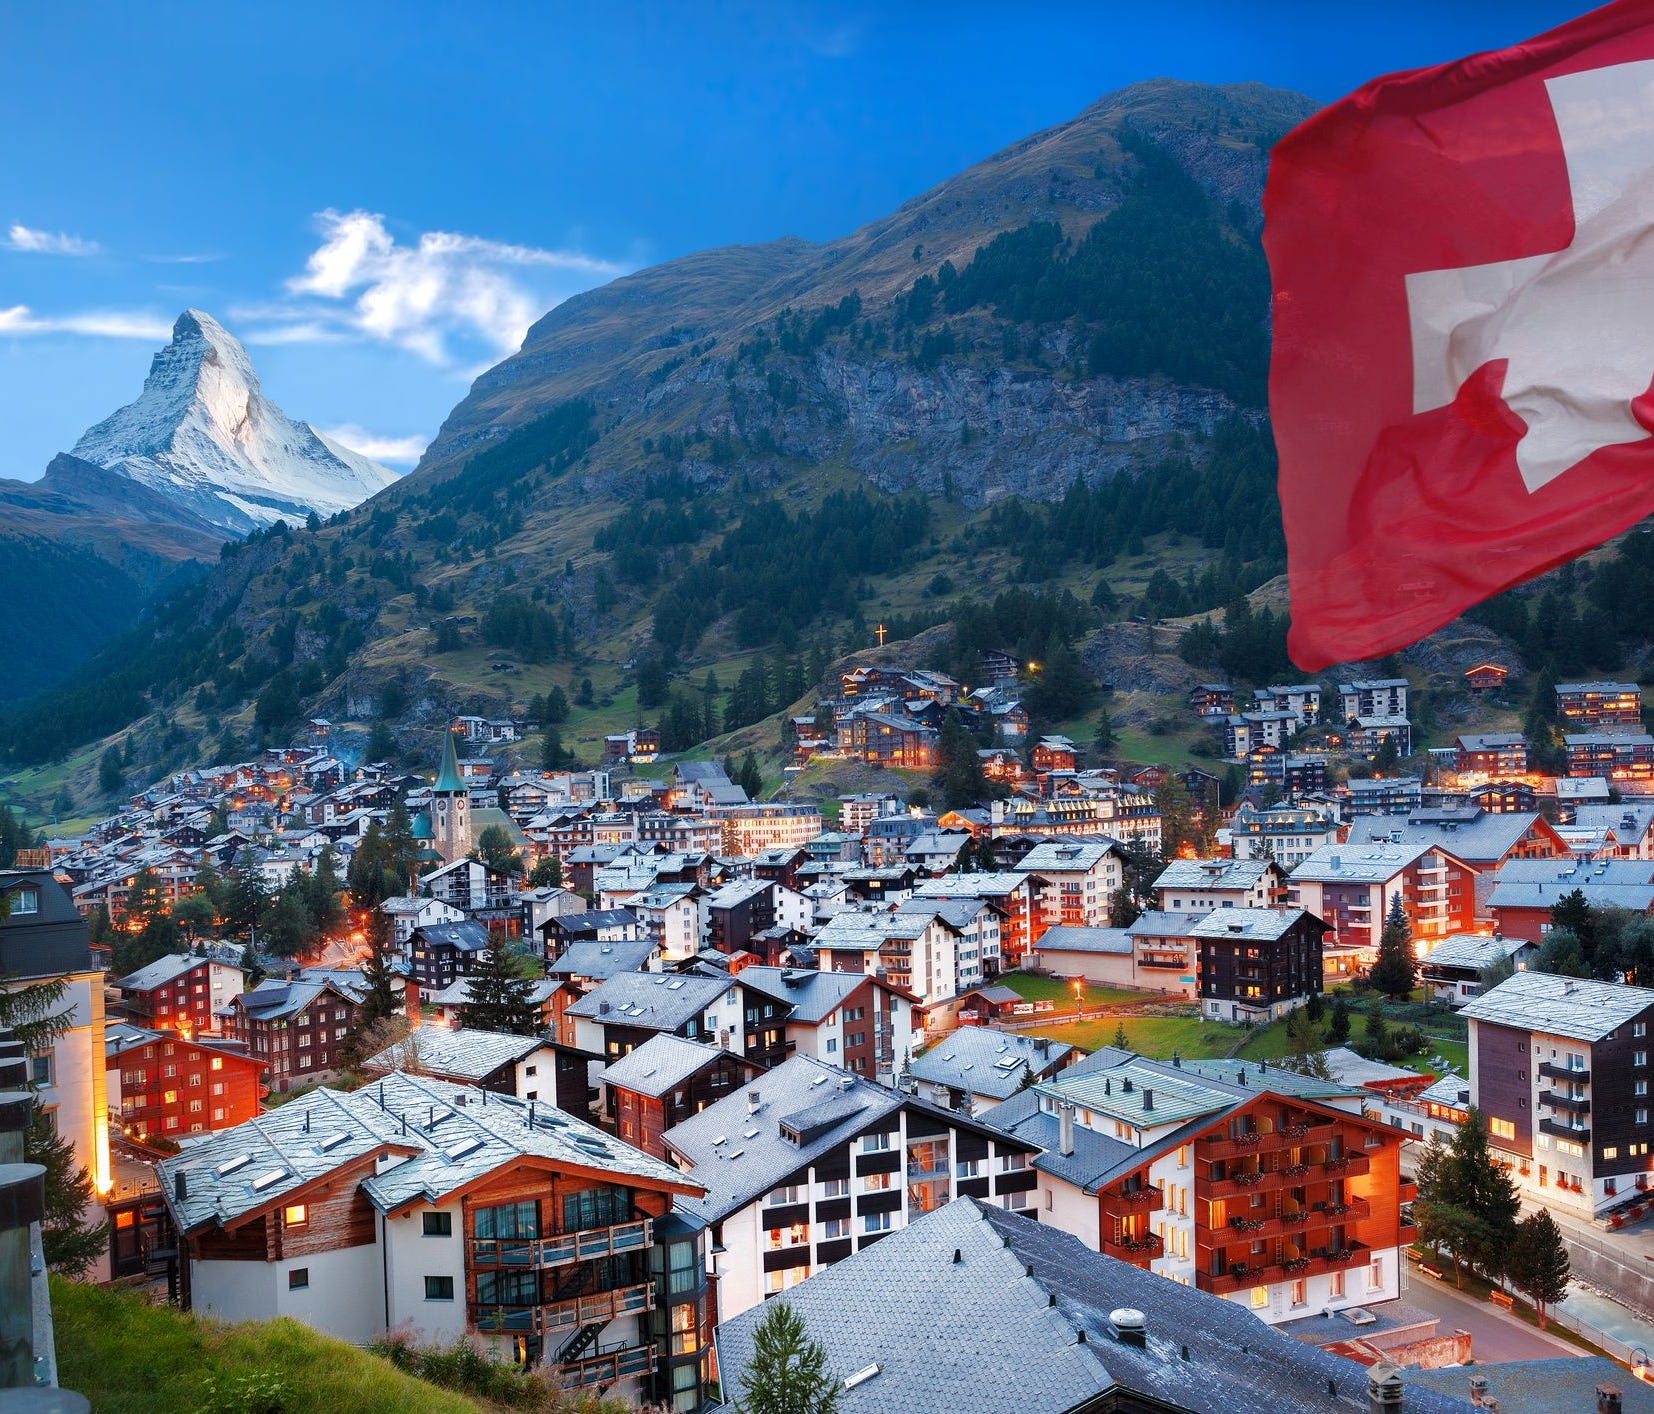 3. Switzerland tied — 2nd. Visa-free travel permitted to 176 countries; Dual citizenship: Allowed; Annual int'l departures: 13.86 million (1.66 per capita); GDP per capita: $61,014